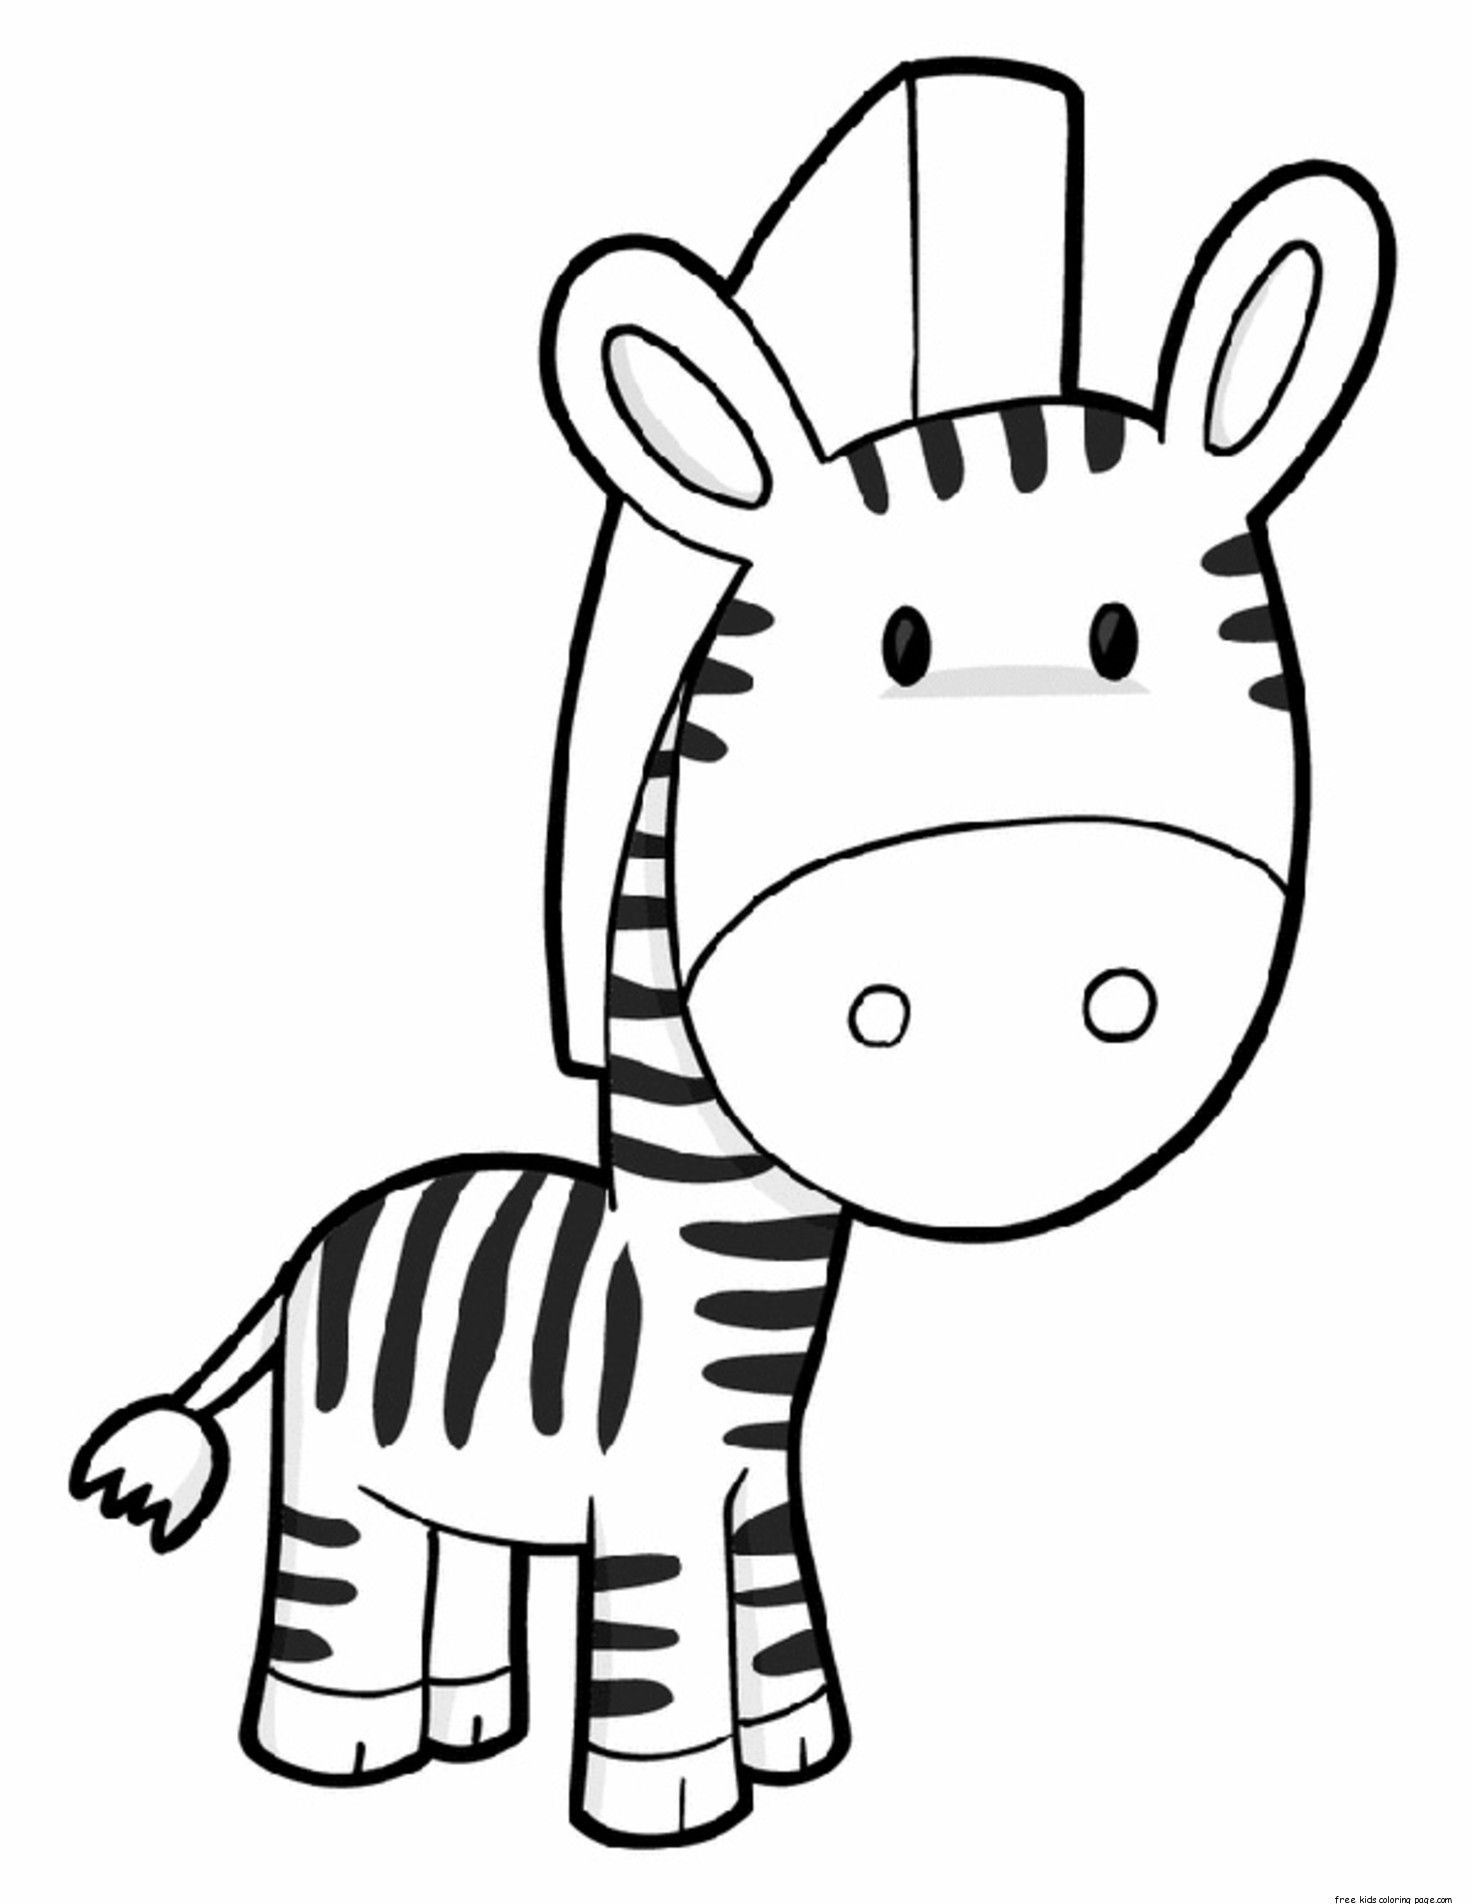 Printable zebra preschool coloring